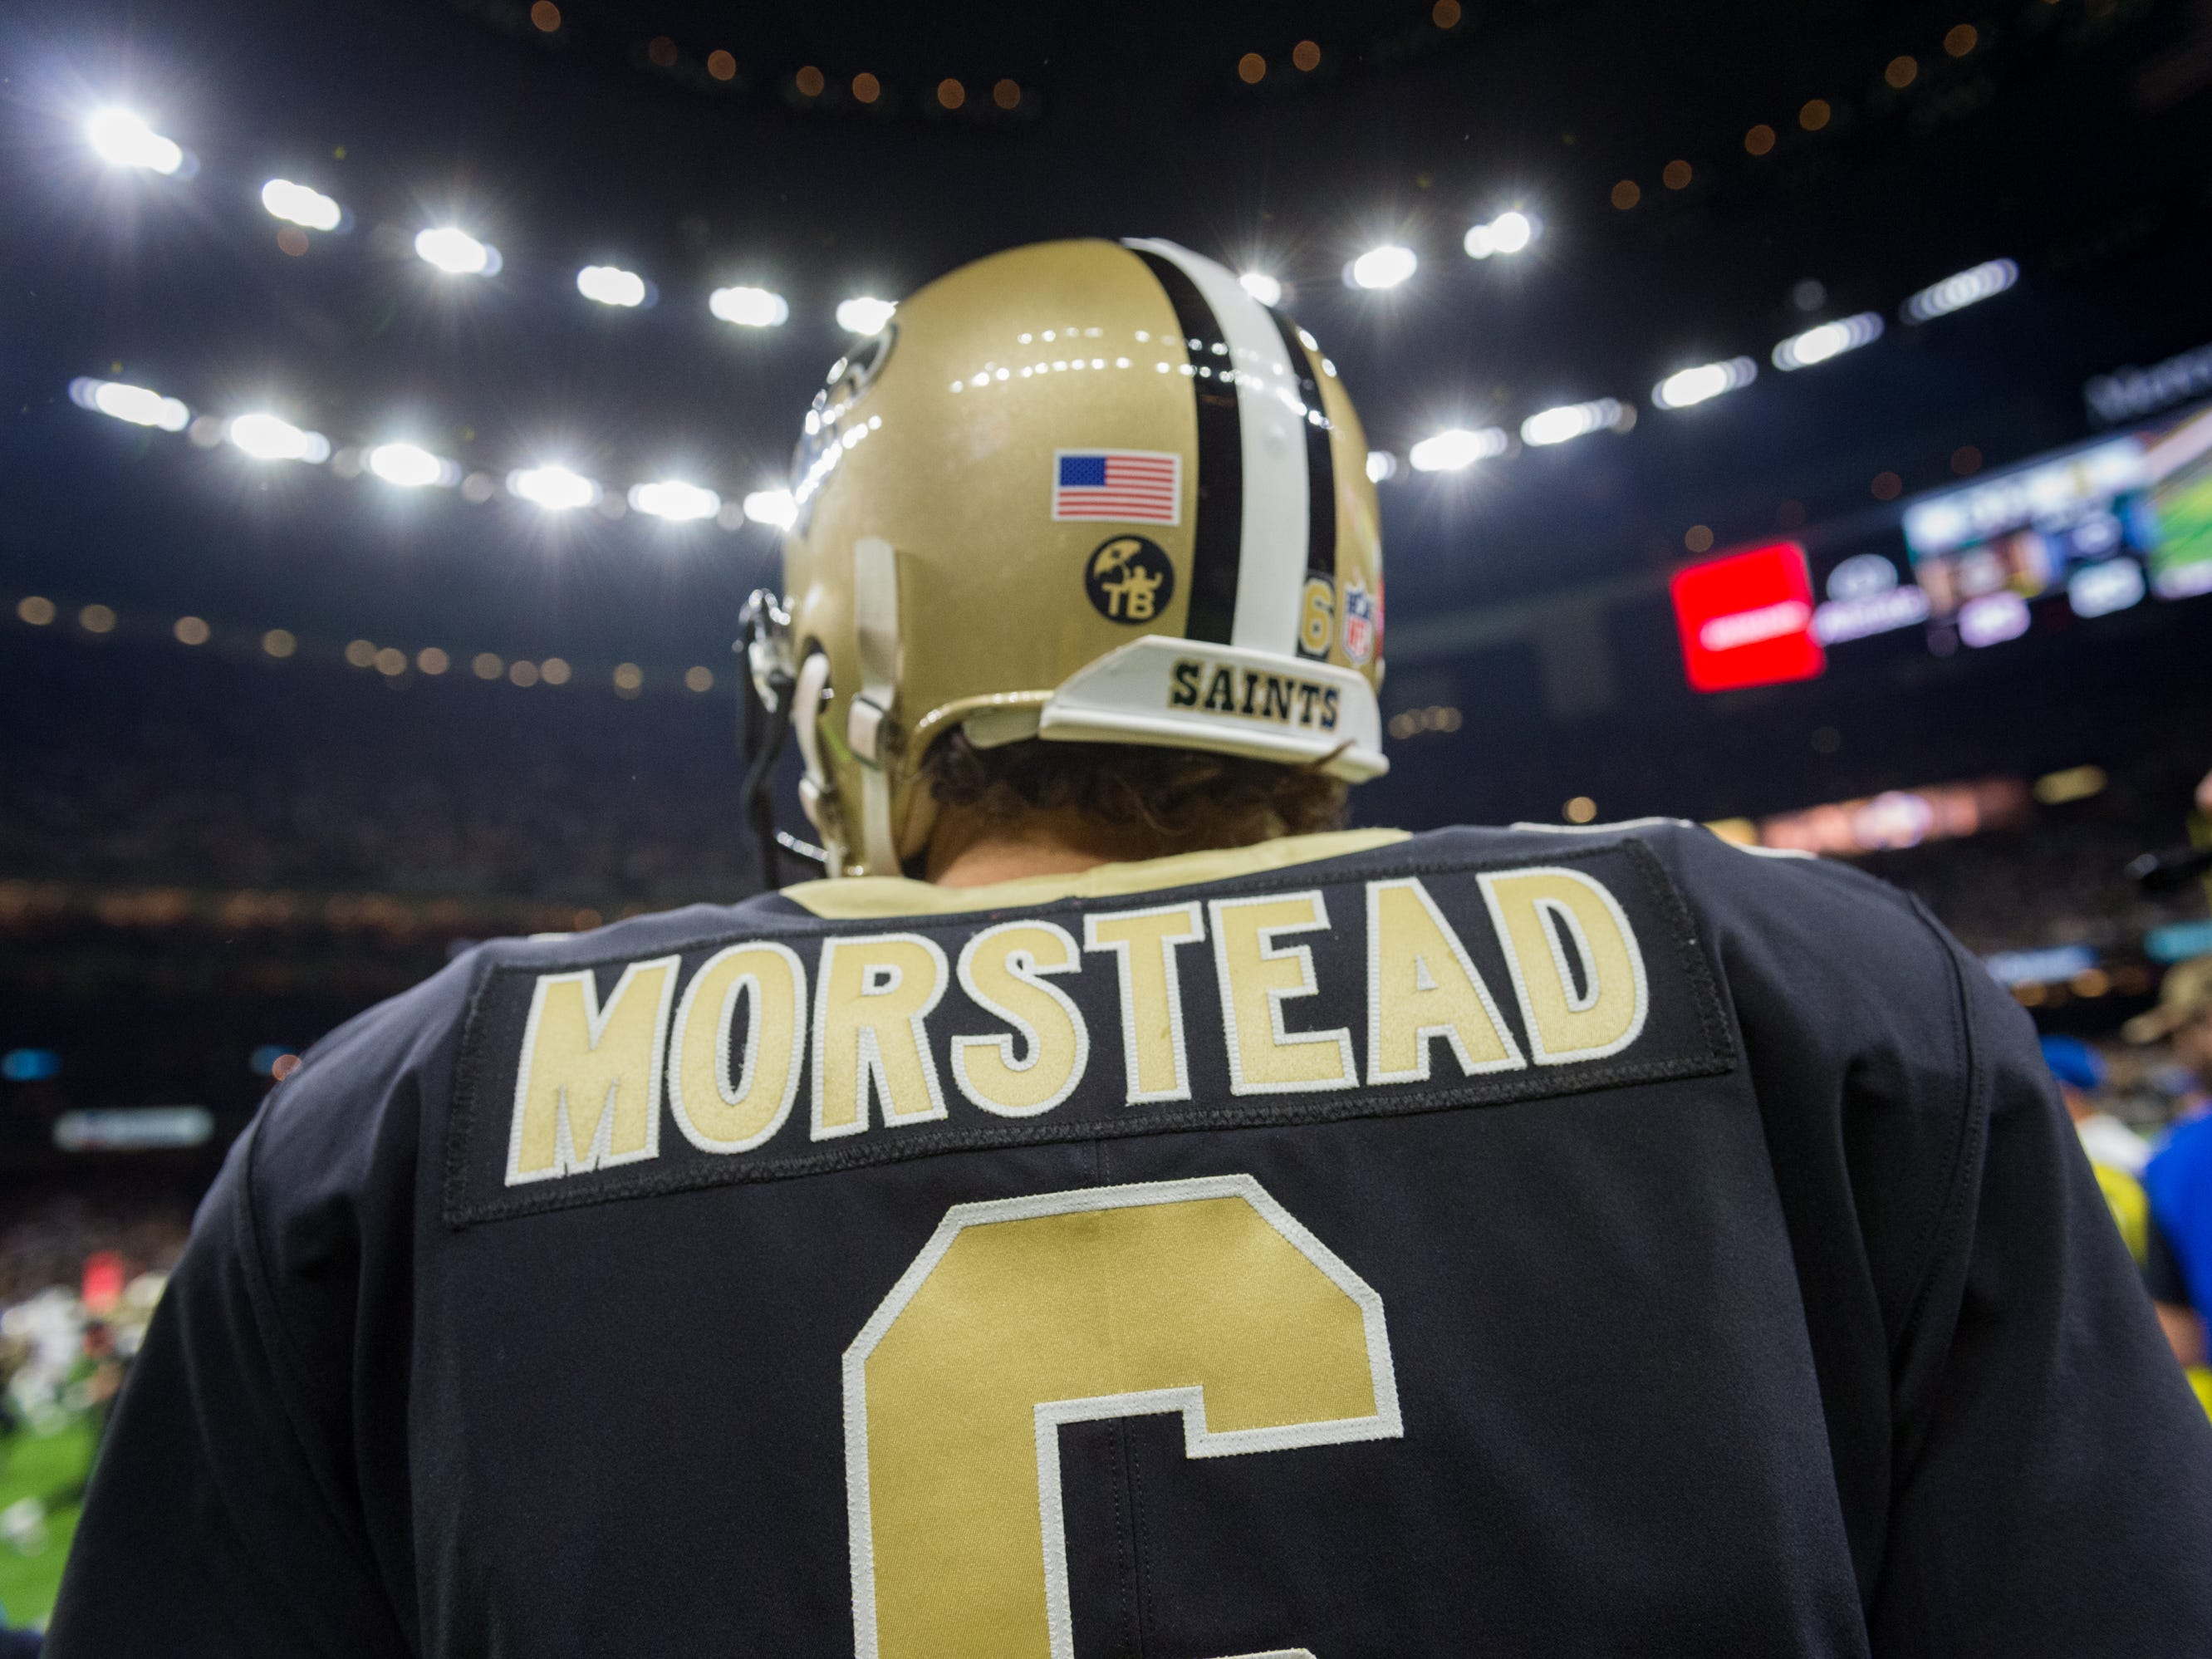 Saints punter Thomas Morstead on the sideline during the NFC Championship playoff football game between the New Orleans Saints and the Los Angeles Rams at the Mercedes-Benz Superdome in New Orleans. Sunday, Jan. 20, 2019.